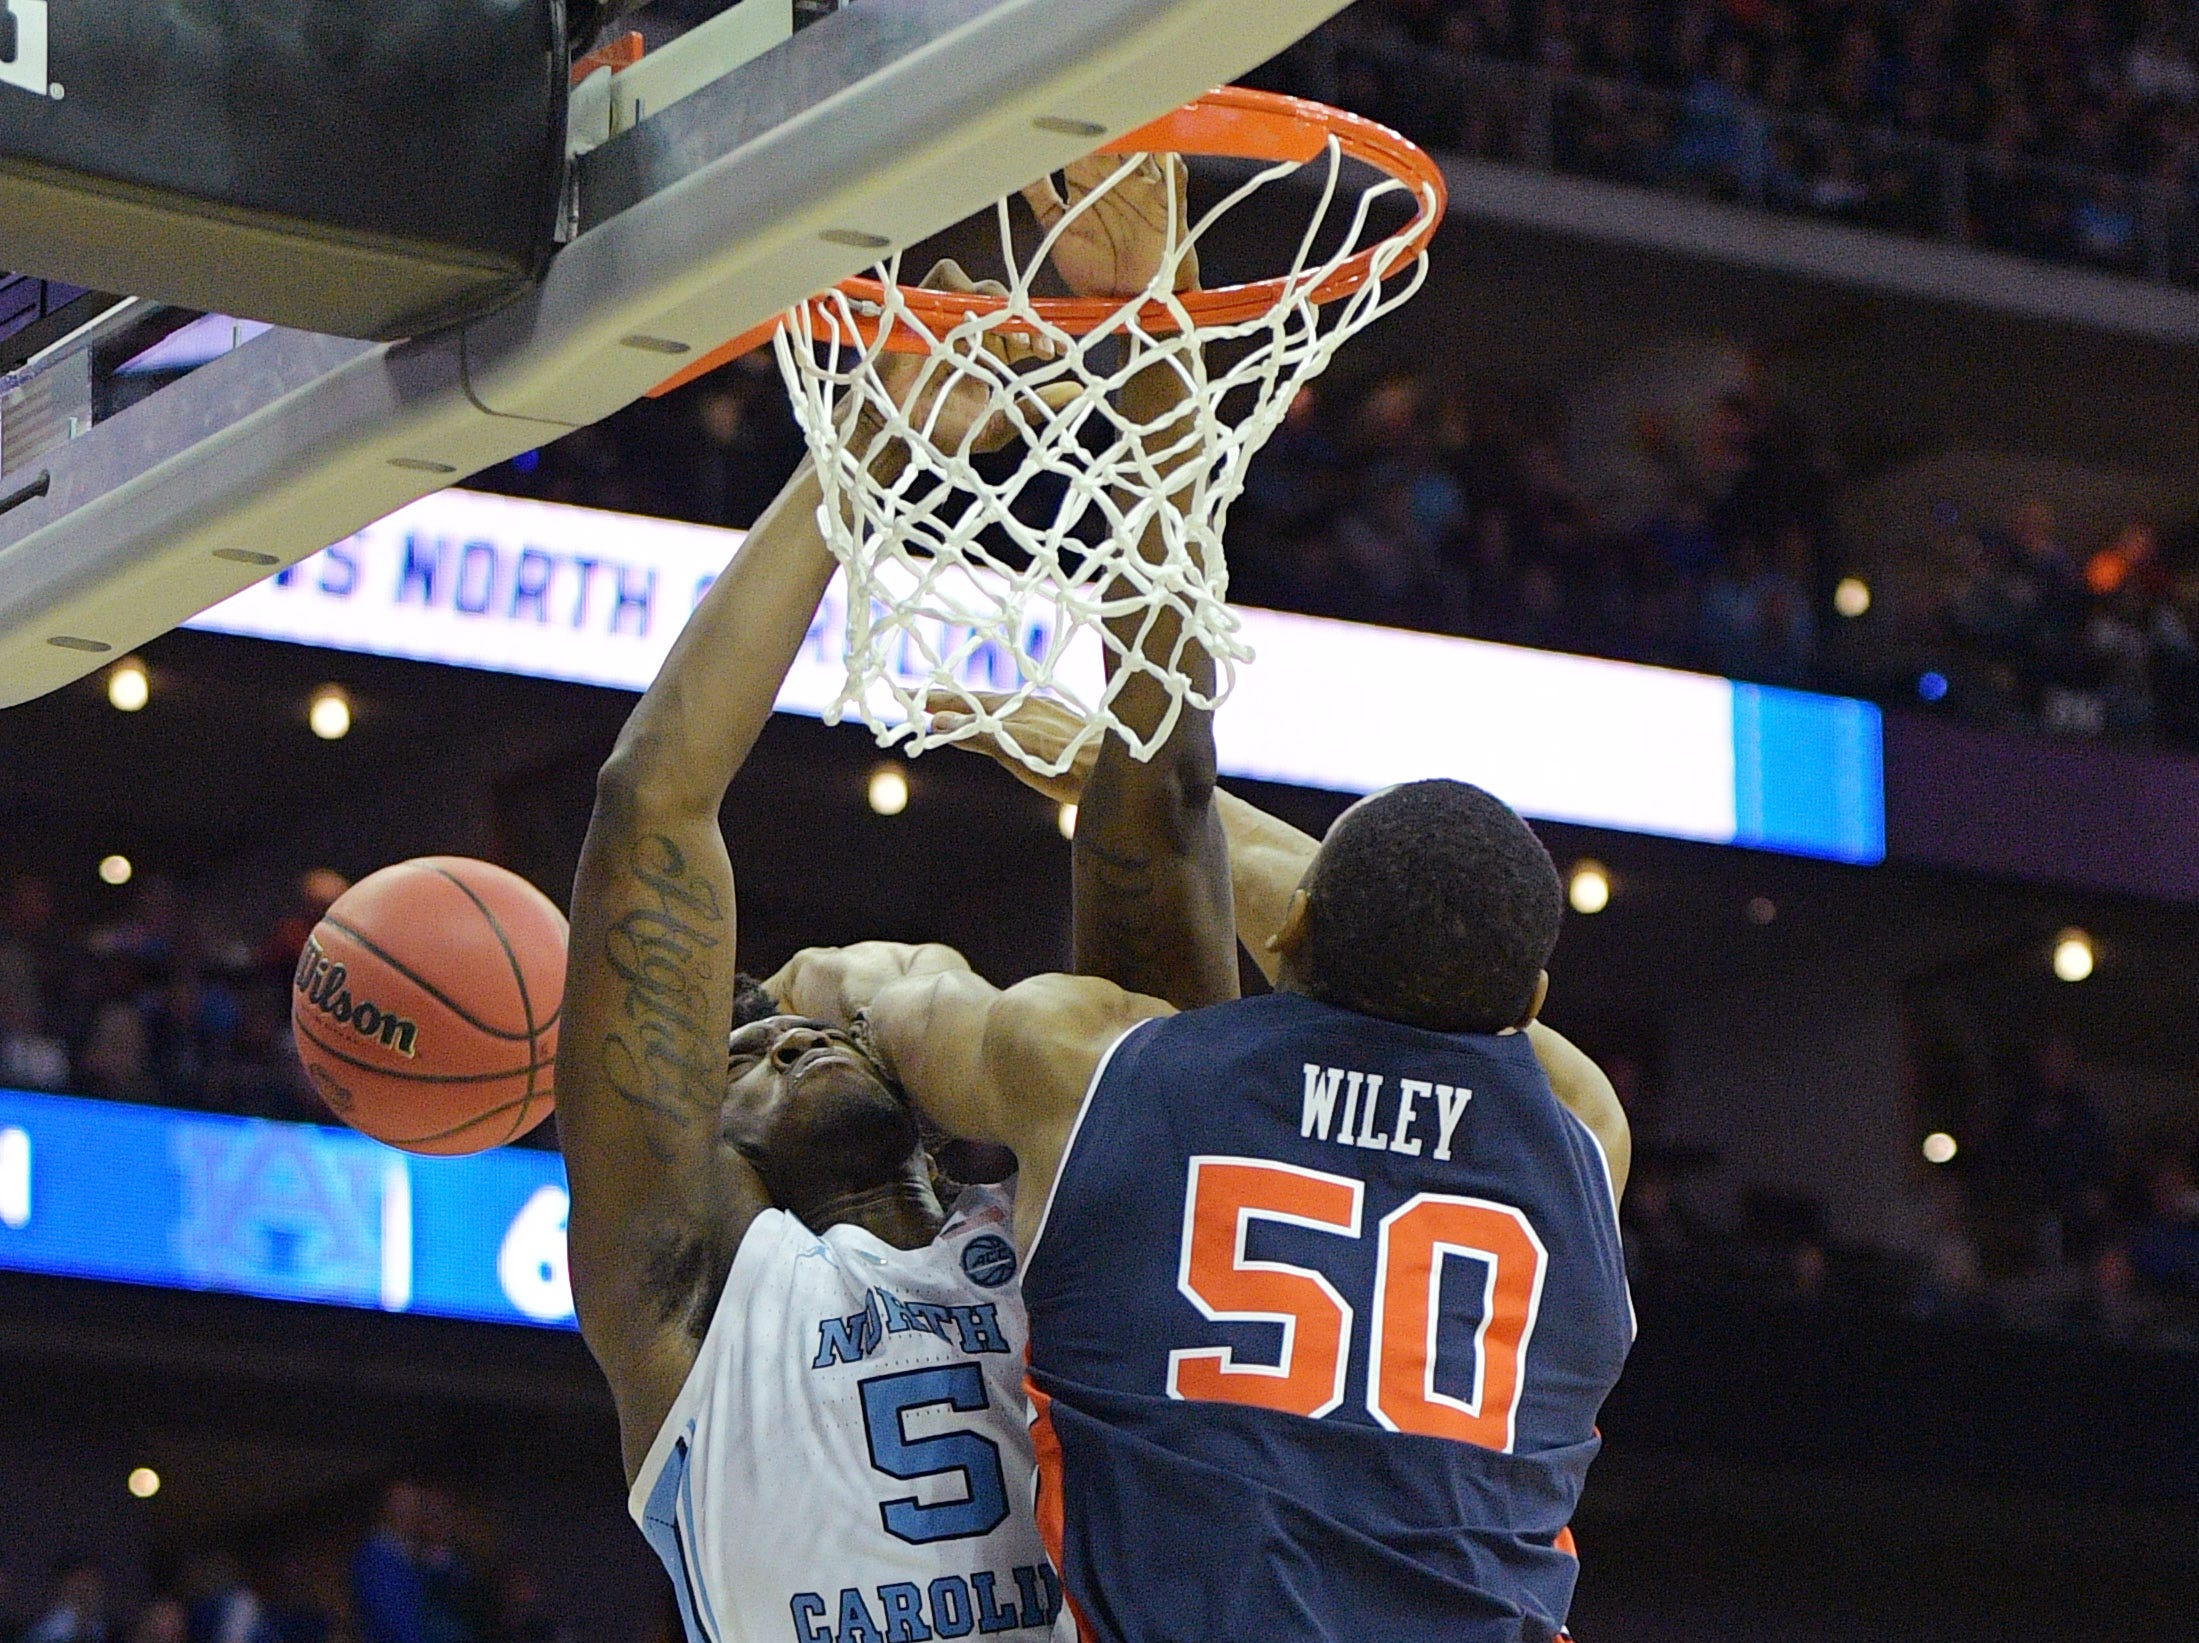 Mar 29, 2019; Kansas City, MO, United States; Auburn Tigers center Austin Wiley (50) knocks the ball away from North Carolina Tar Heels forward Nassir Little (5) during the second half in the semifinals of the midwest regional of the 2019 NCAA Tournament at Sprint Center. Mandatory Credit: Denny Medley-USA TODAY Sports